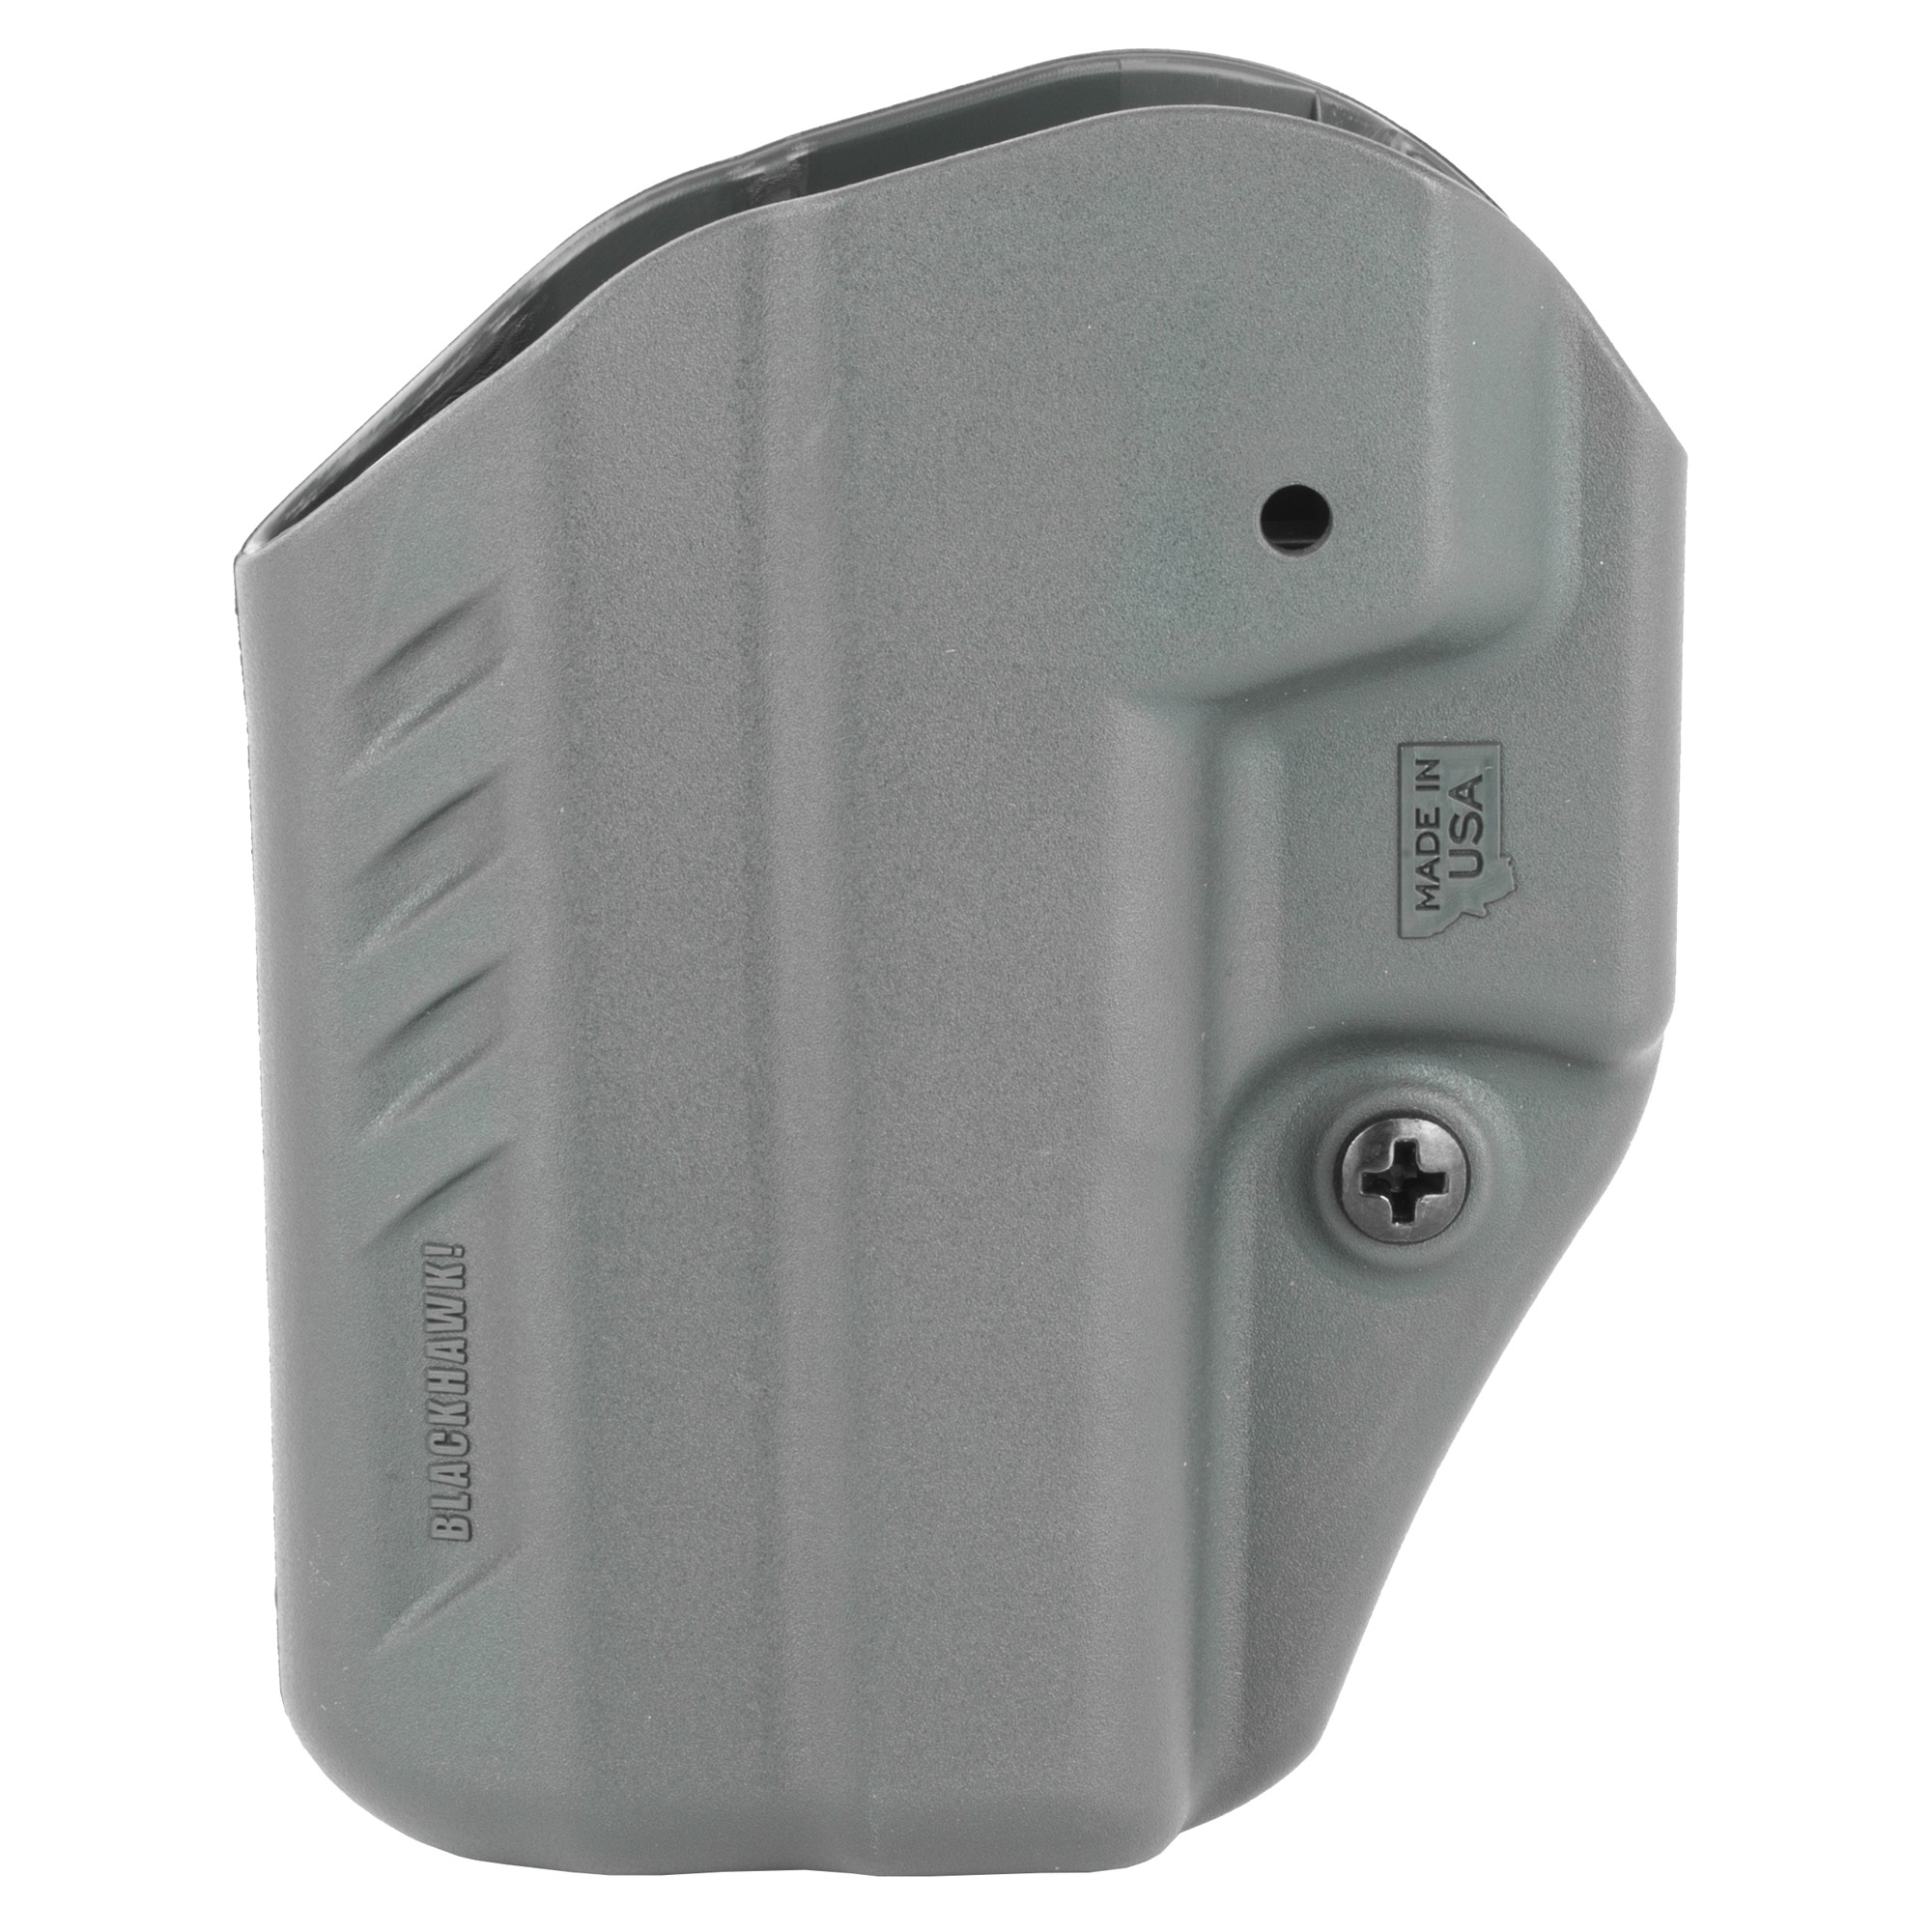 Bh Arc Iwb For Glk 43 Ambi Gry